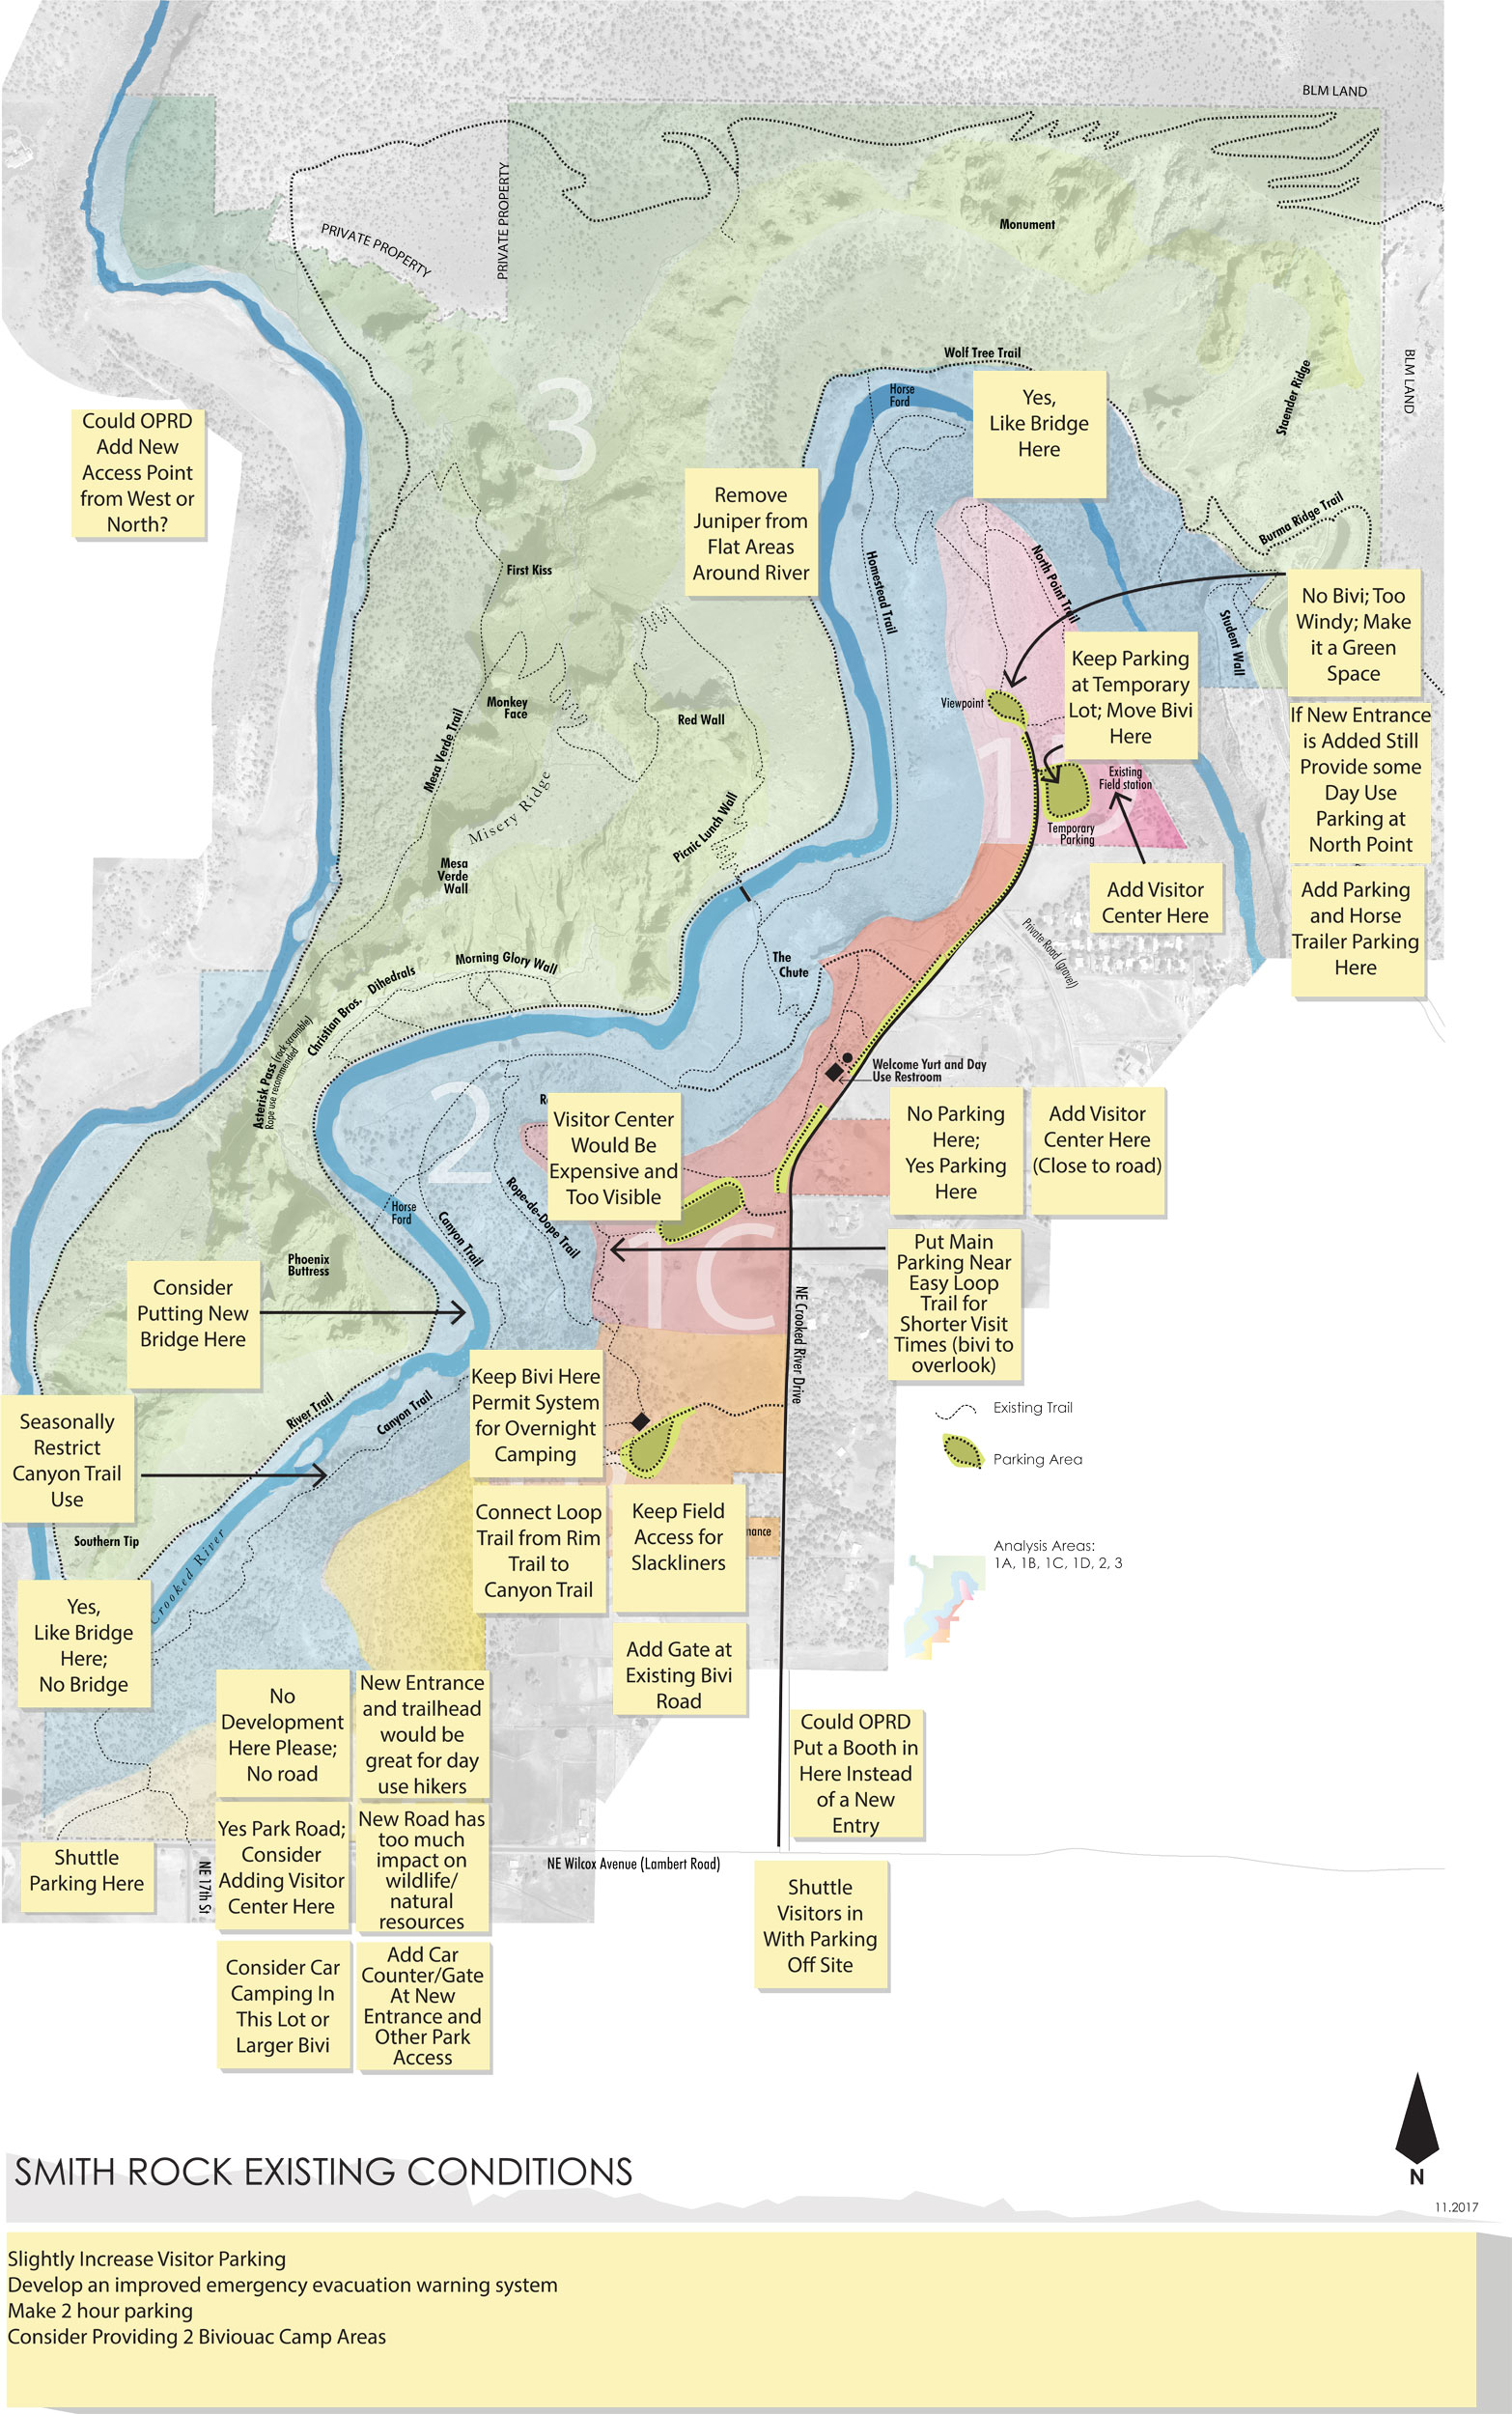 Smith Rock Master Plans Feedback from Public Sessions—click to enlarge